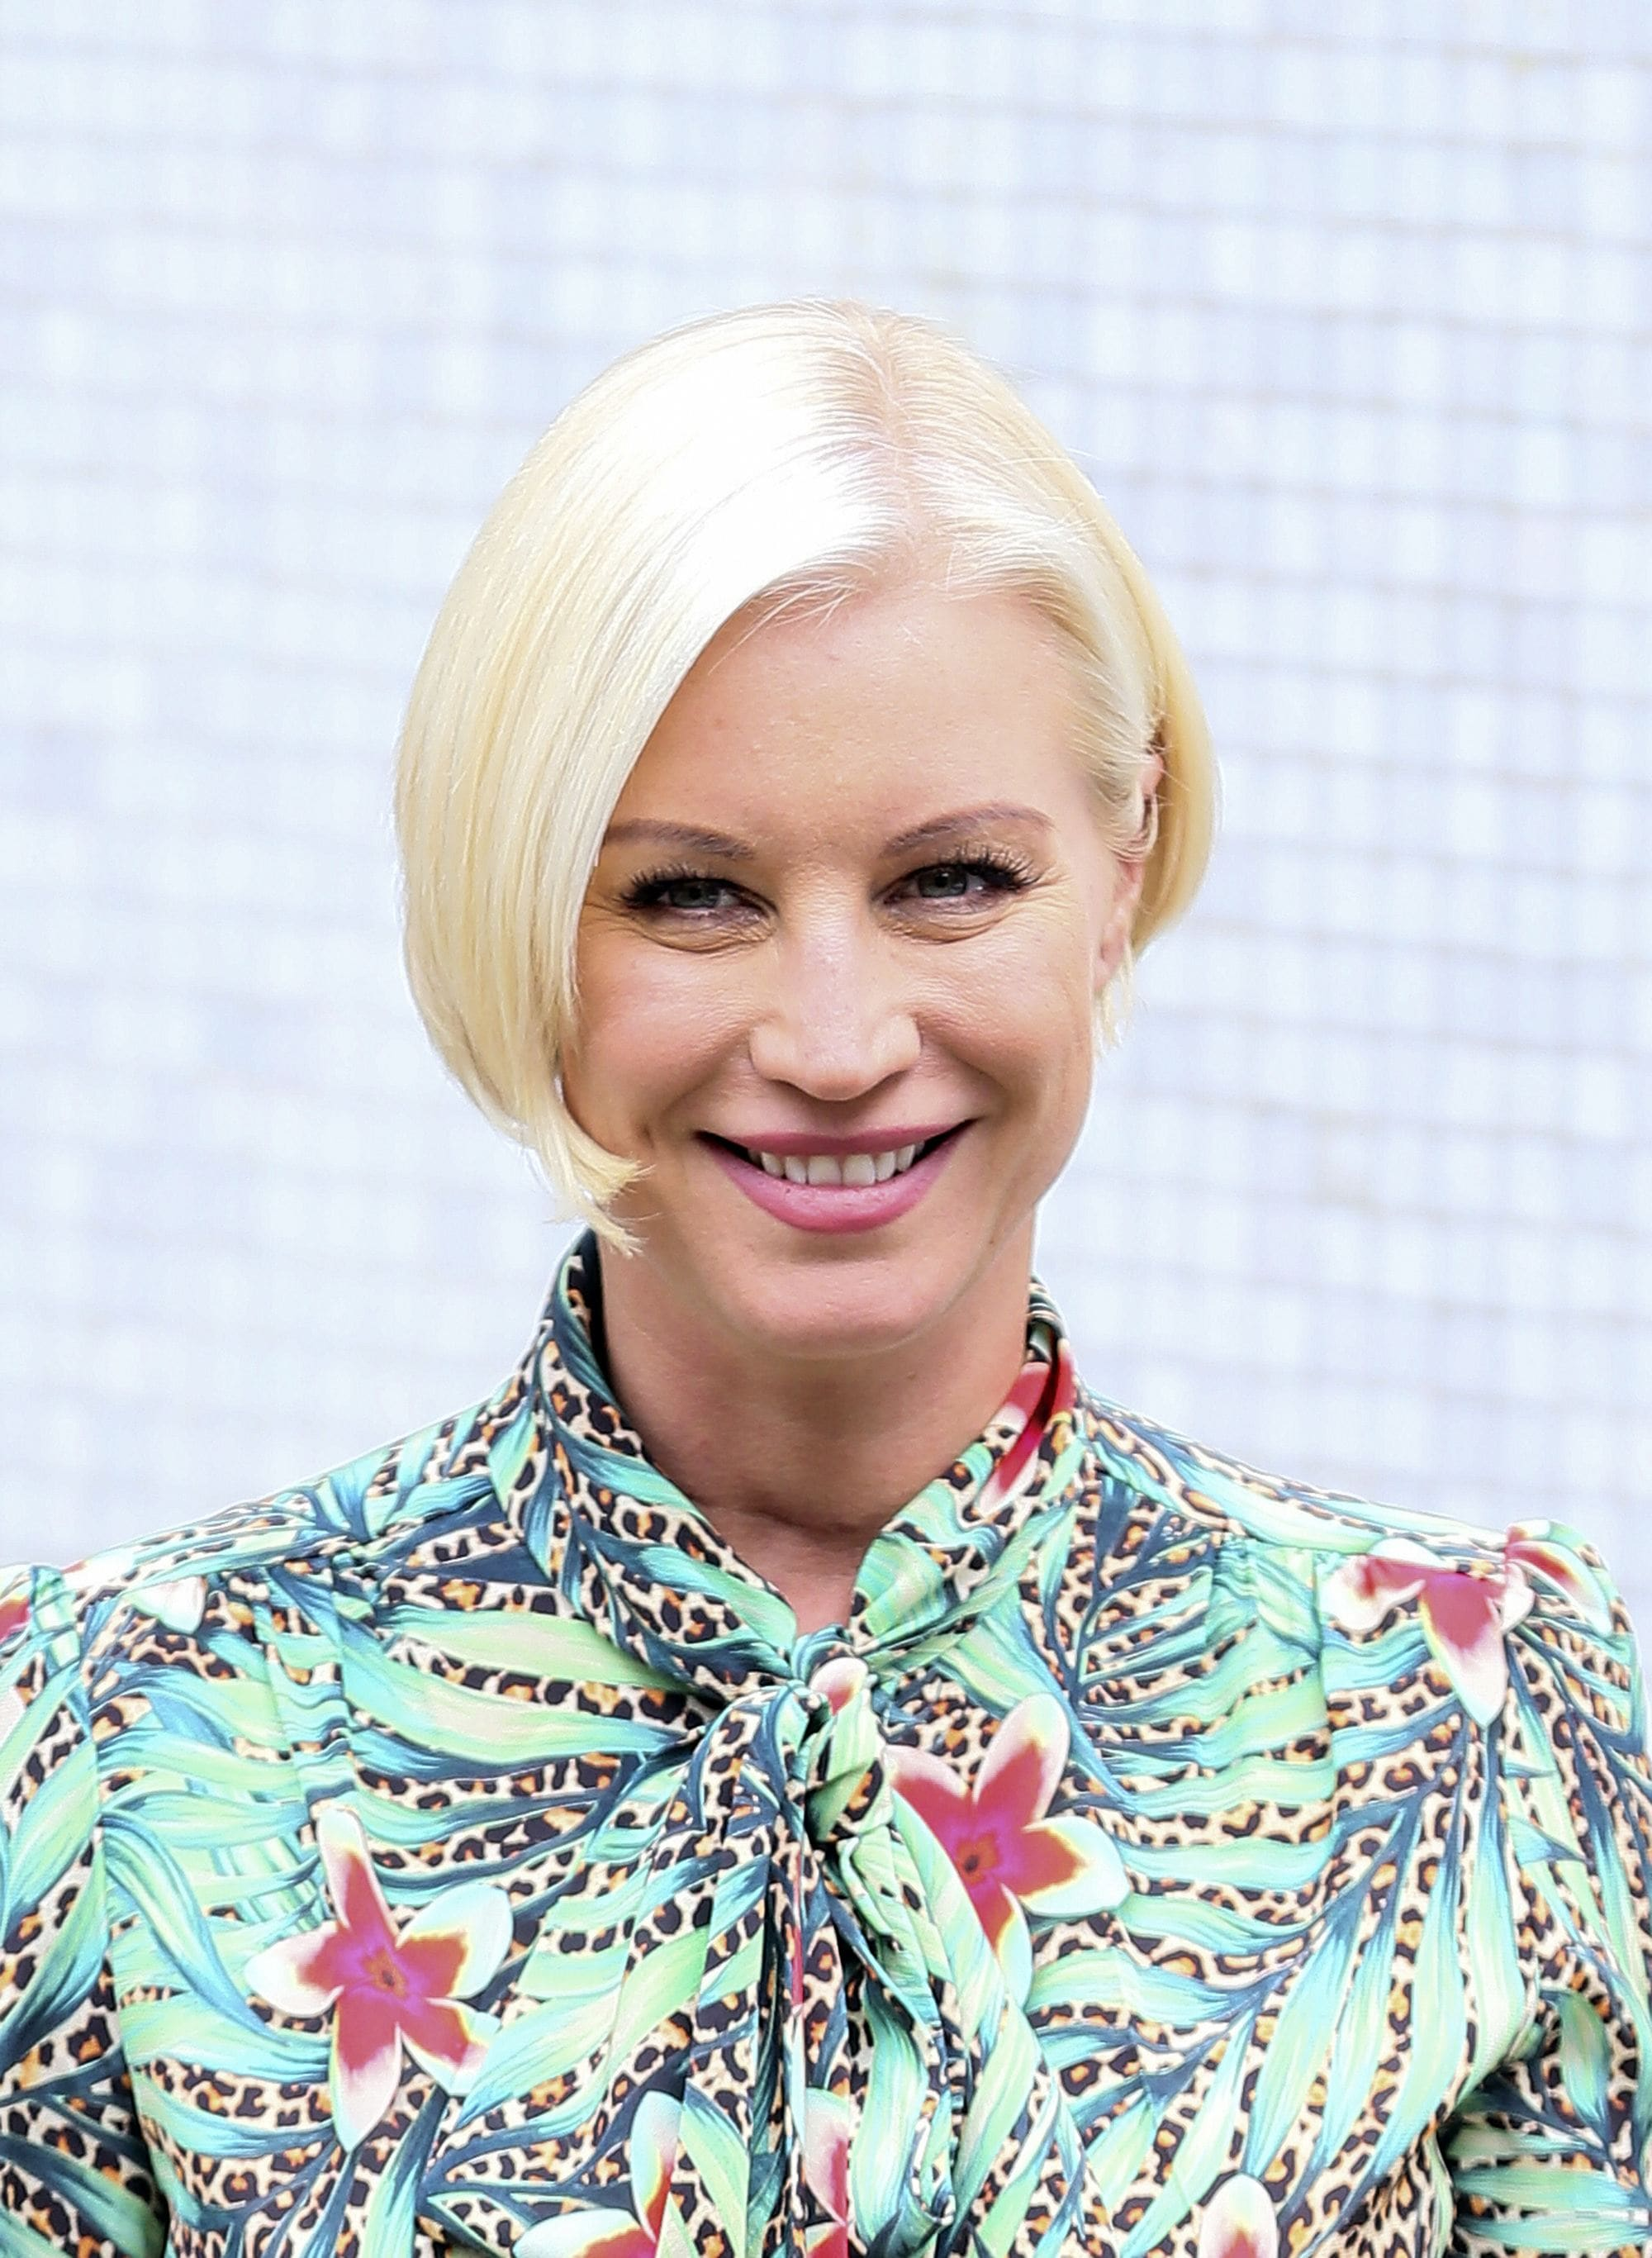 tv presenter denise van outen with a bright blonde long pixie cut